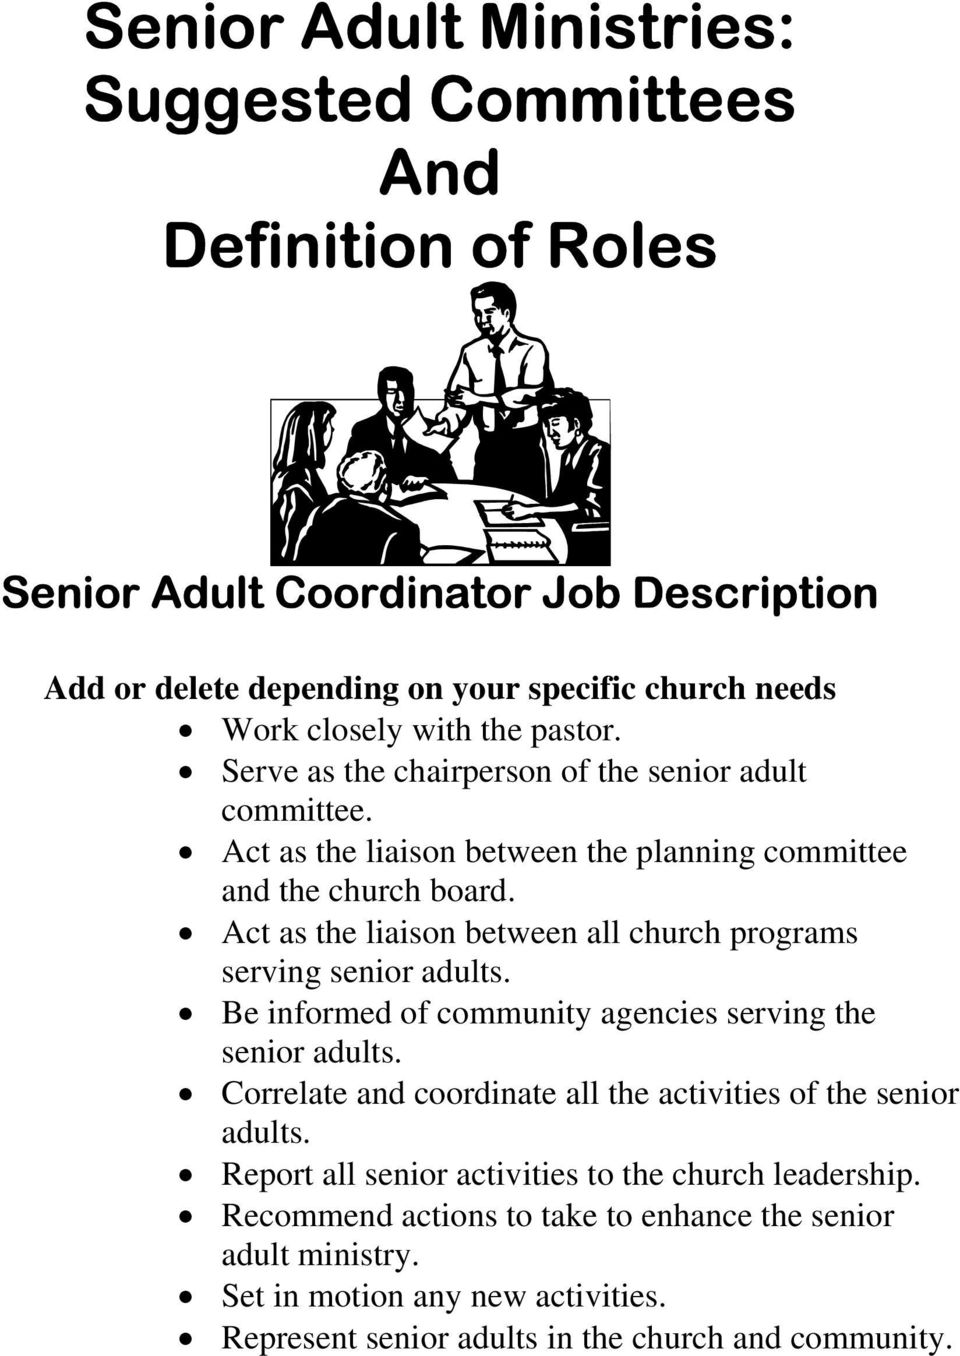 Act as the liaison between all church programs serving senior adults. Be informed of community agencies serving the senior adults.